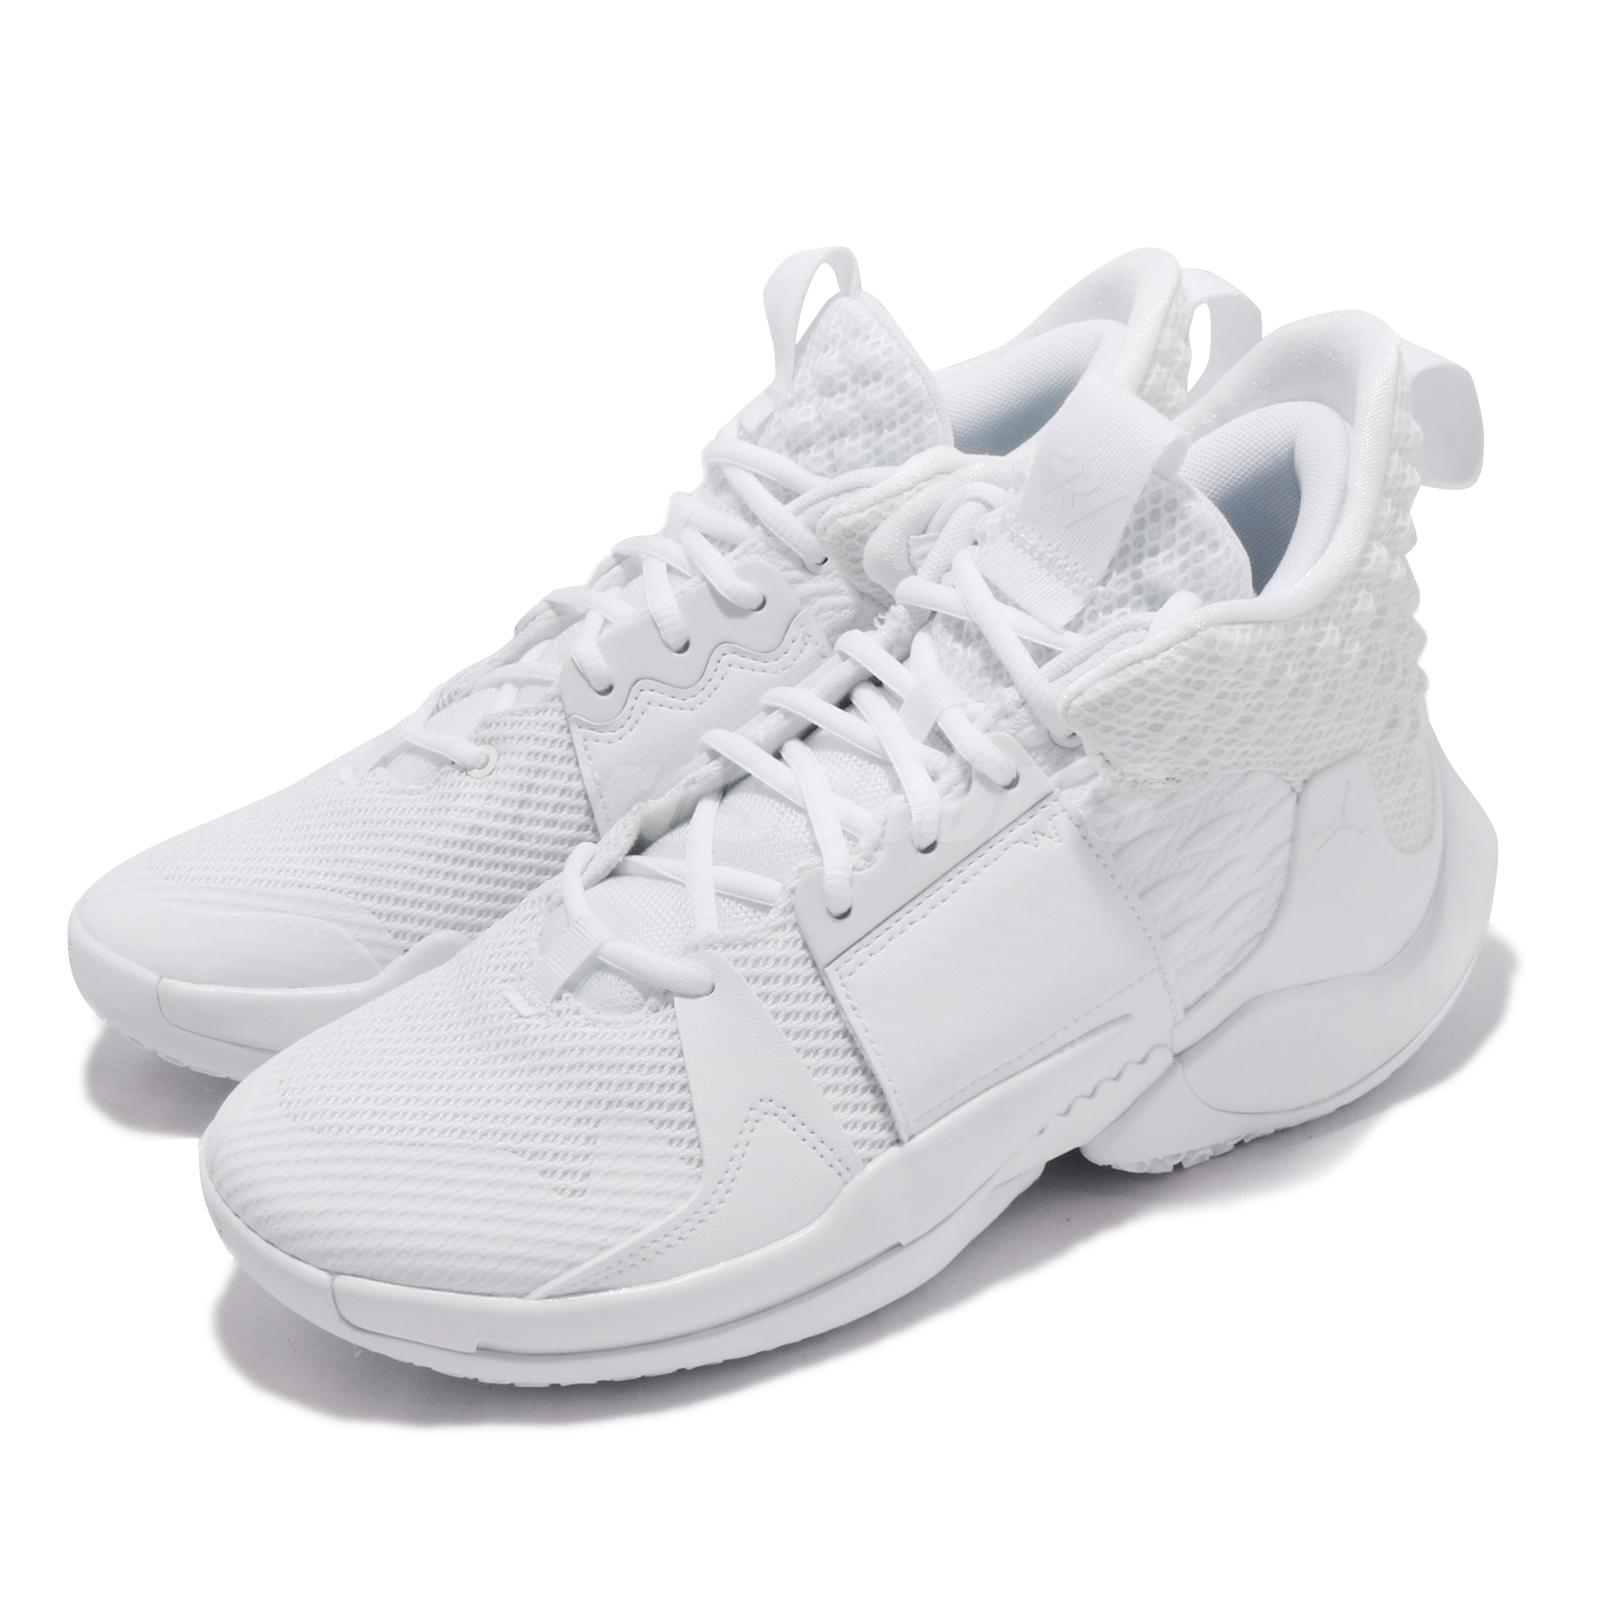 westbrook white shoes